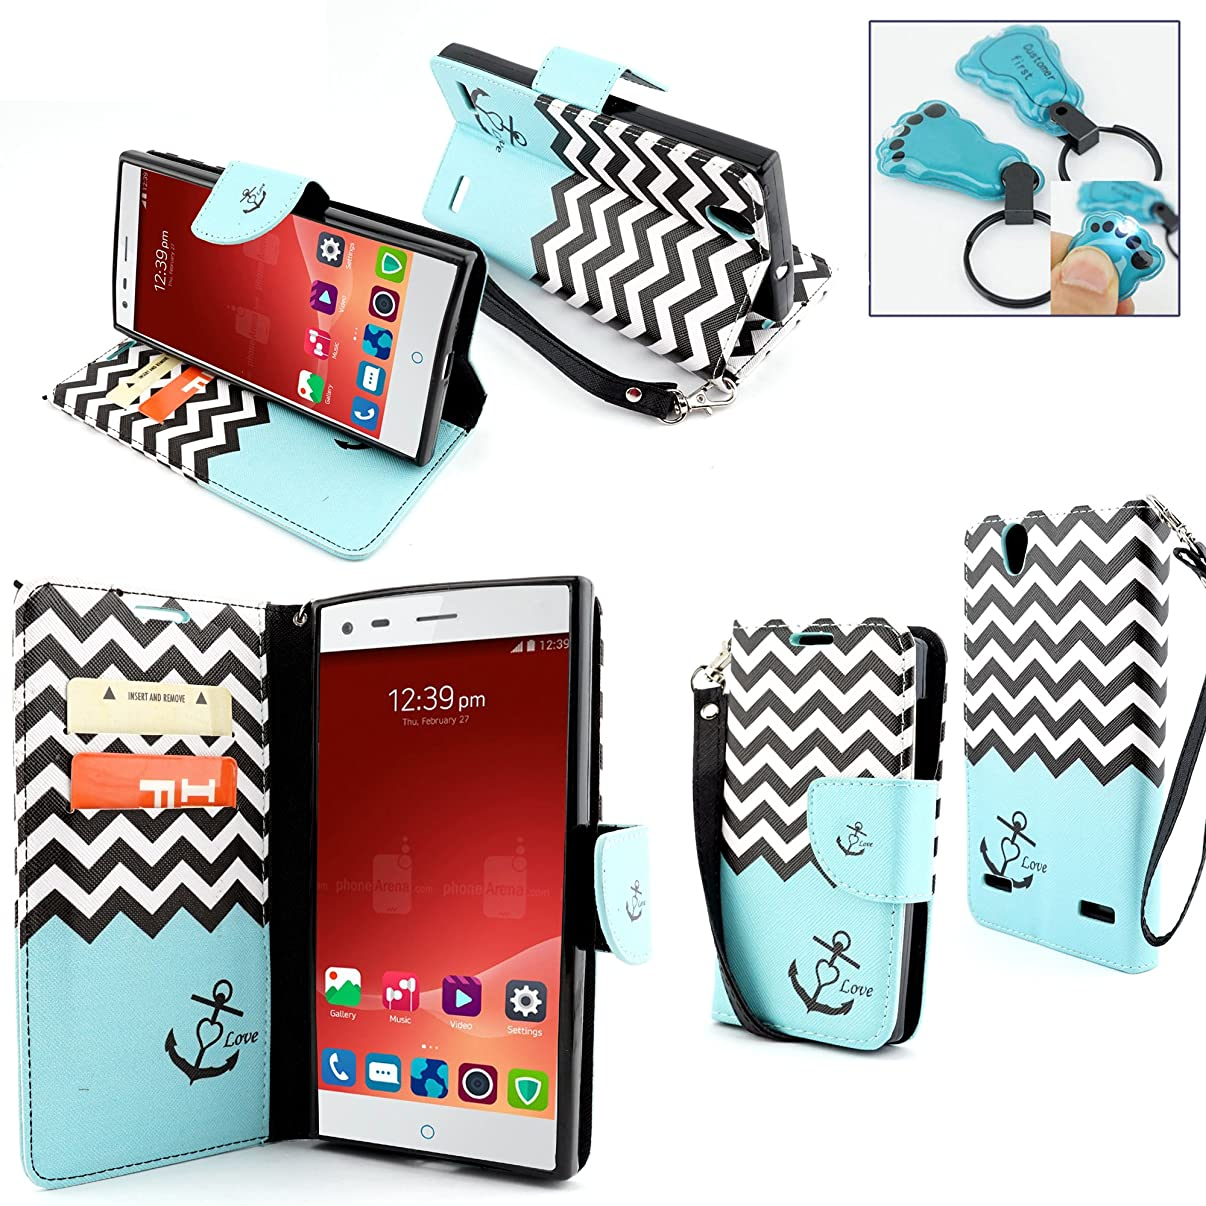 ZTE Warp Elite Case, Customerfirst Magnetic Leather Folio Flip Book Wallet Pouch Case Cover With Fold Up Kickstand and Wrist Strap For ZTE Warp Elite (Boost Mobile) - Includes Key Chain (Zebra Teal)